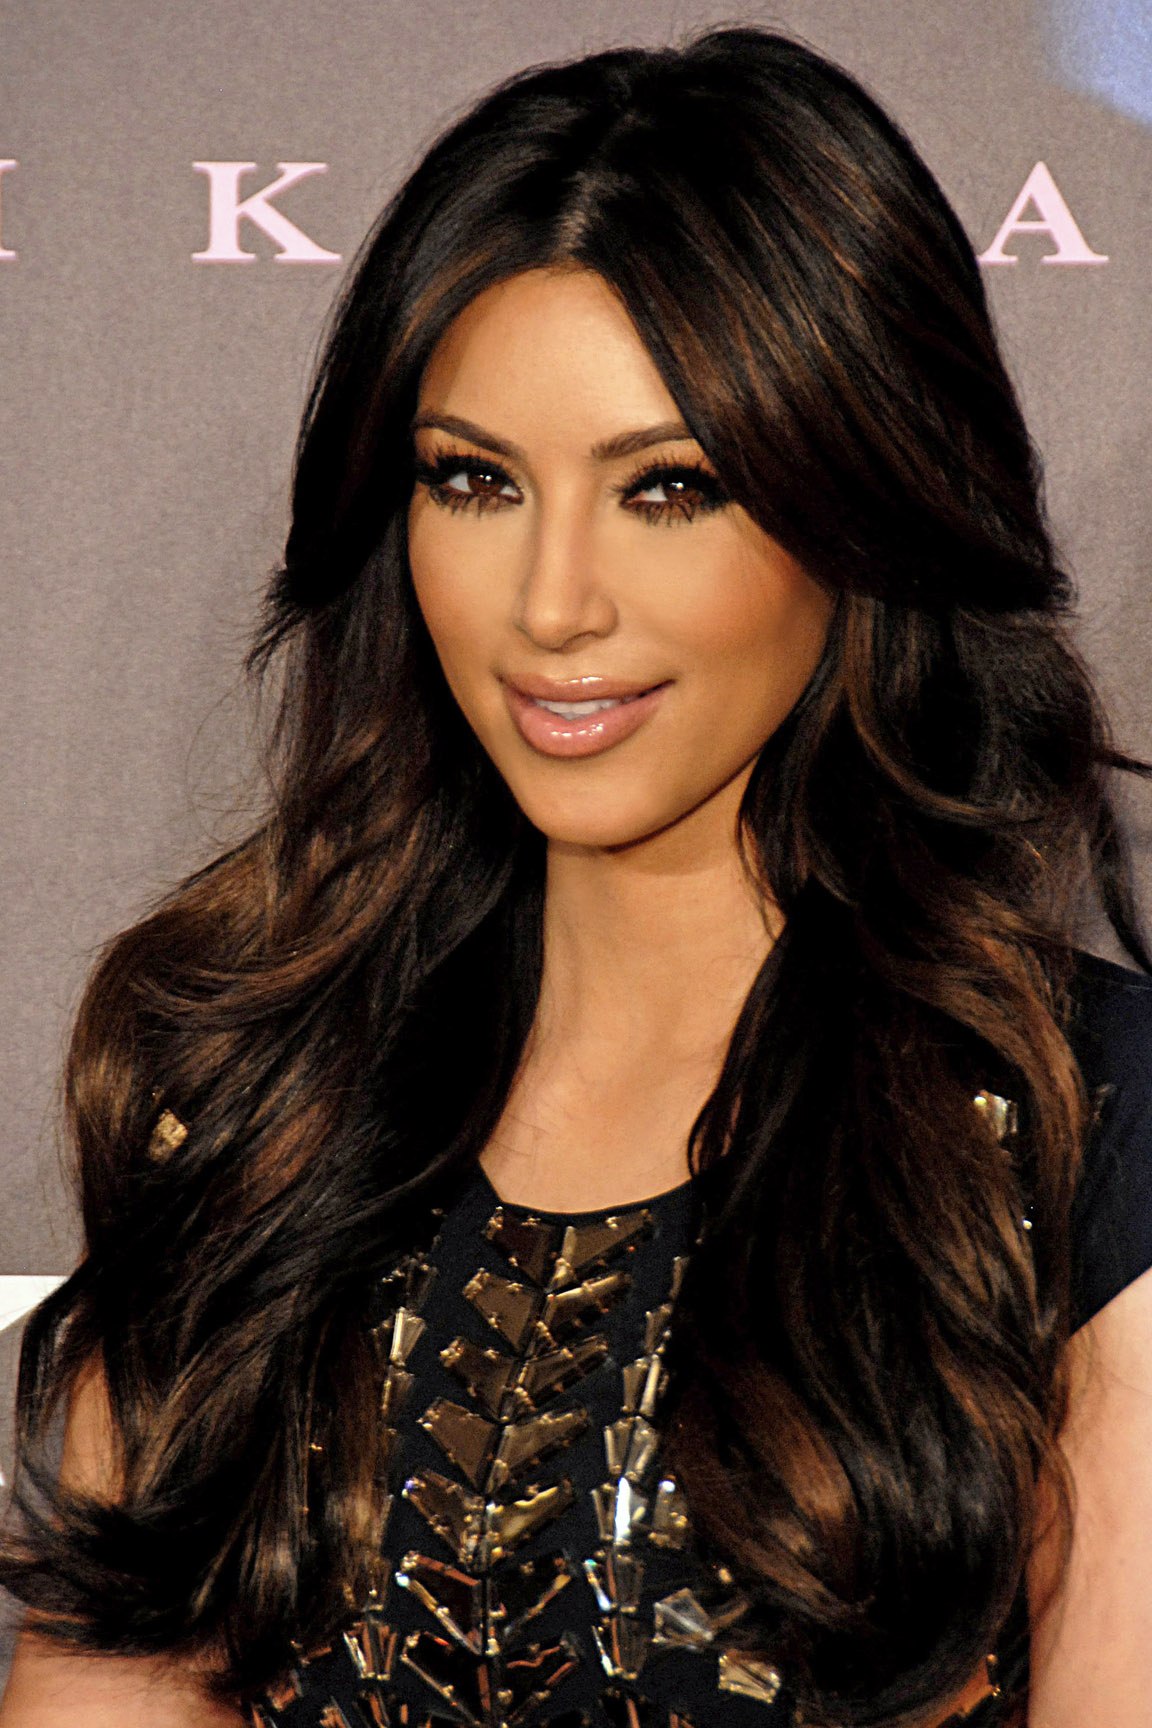 File:Kim Kardashian 2011.jpg - Wikipedia, the free encyclopedia